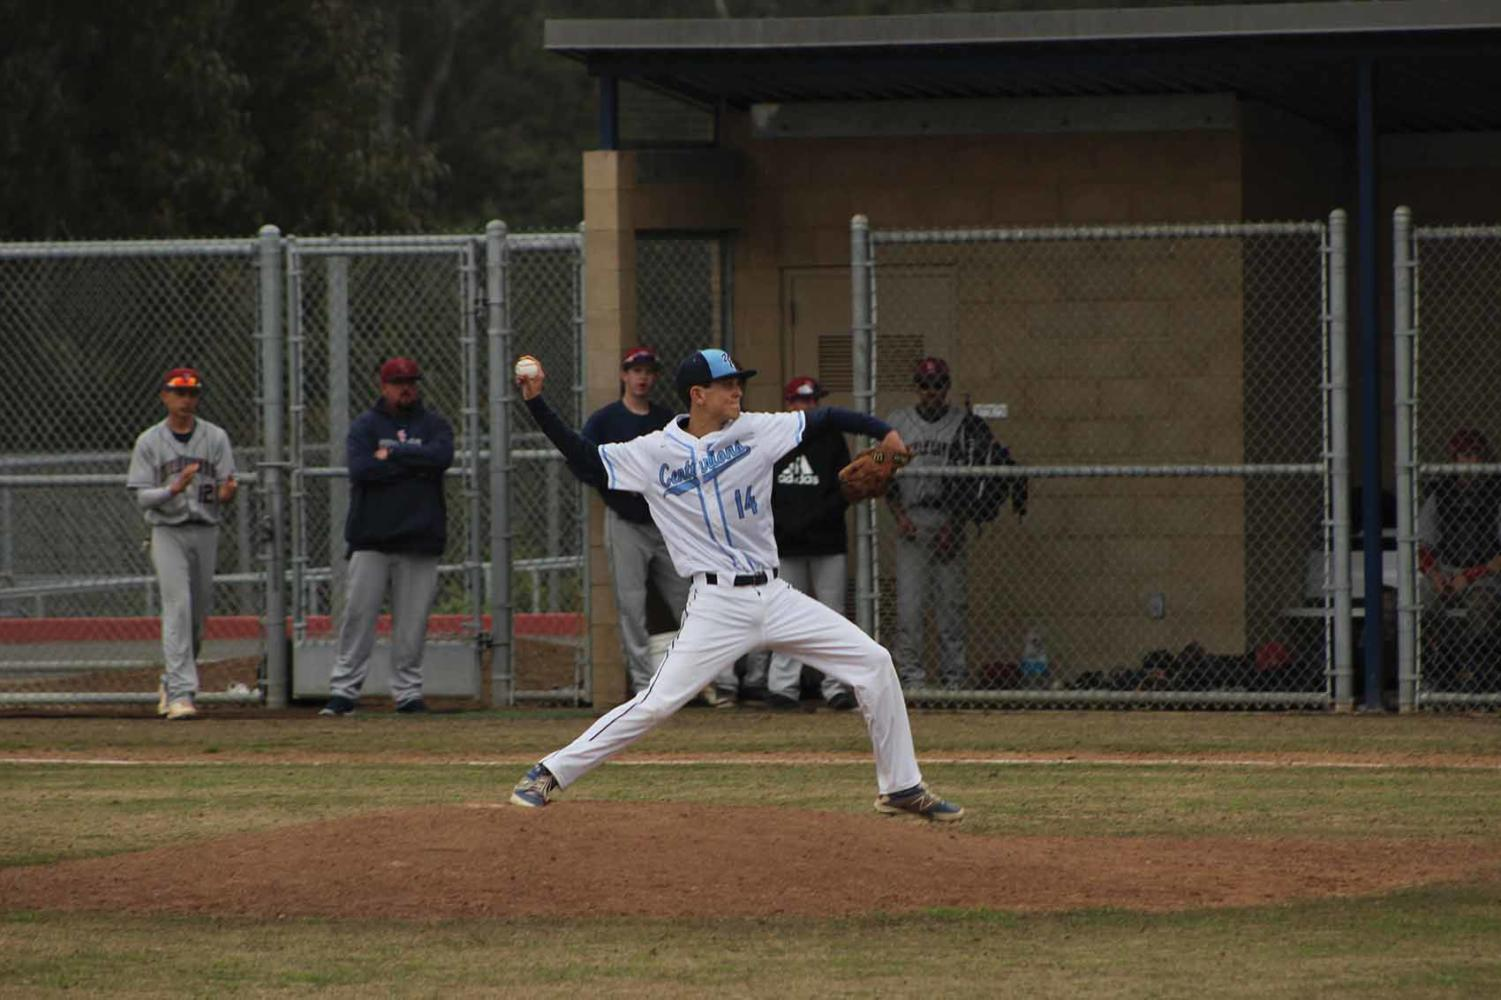 Senior Pitcher Aidan Kennedy takes the mound in a pre-League game versus Steele Canyon High.